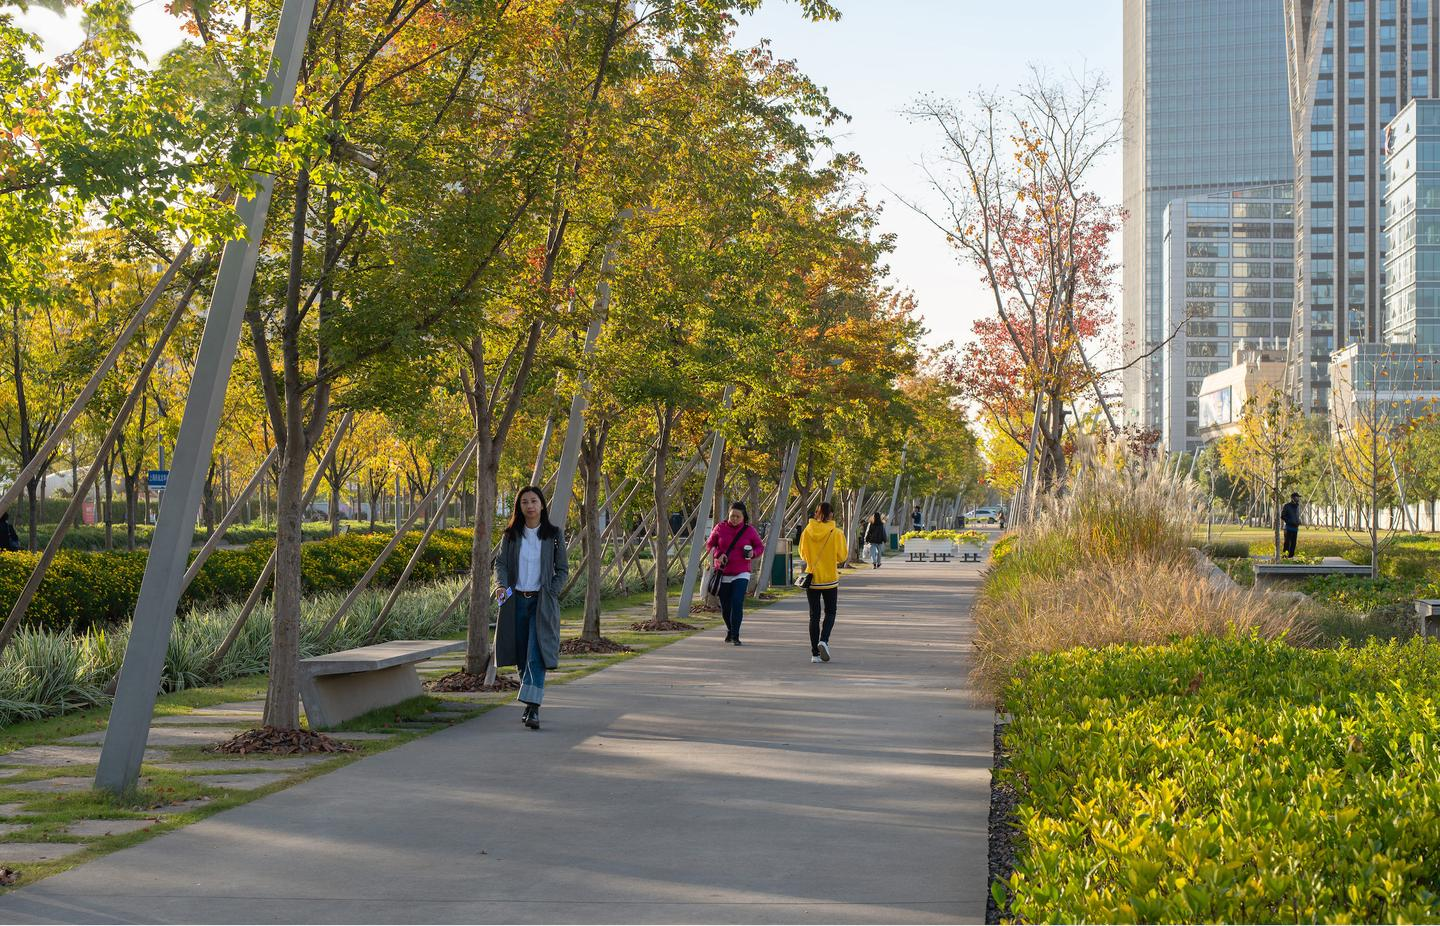 The Xuhui Runway Park contains a total of 82 local plant species and 2,227 trees